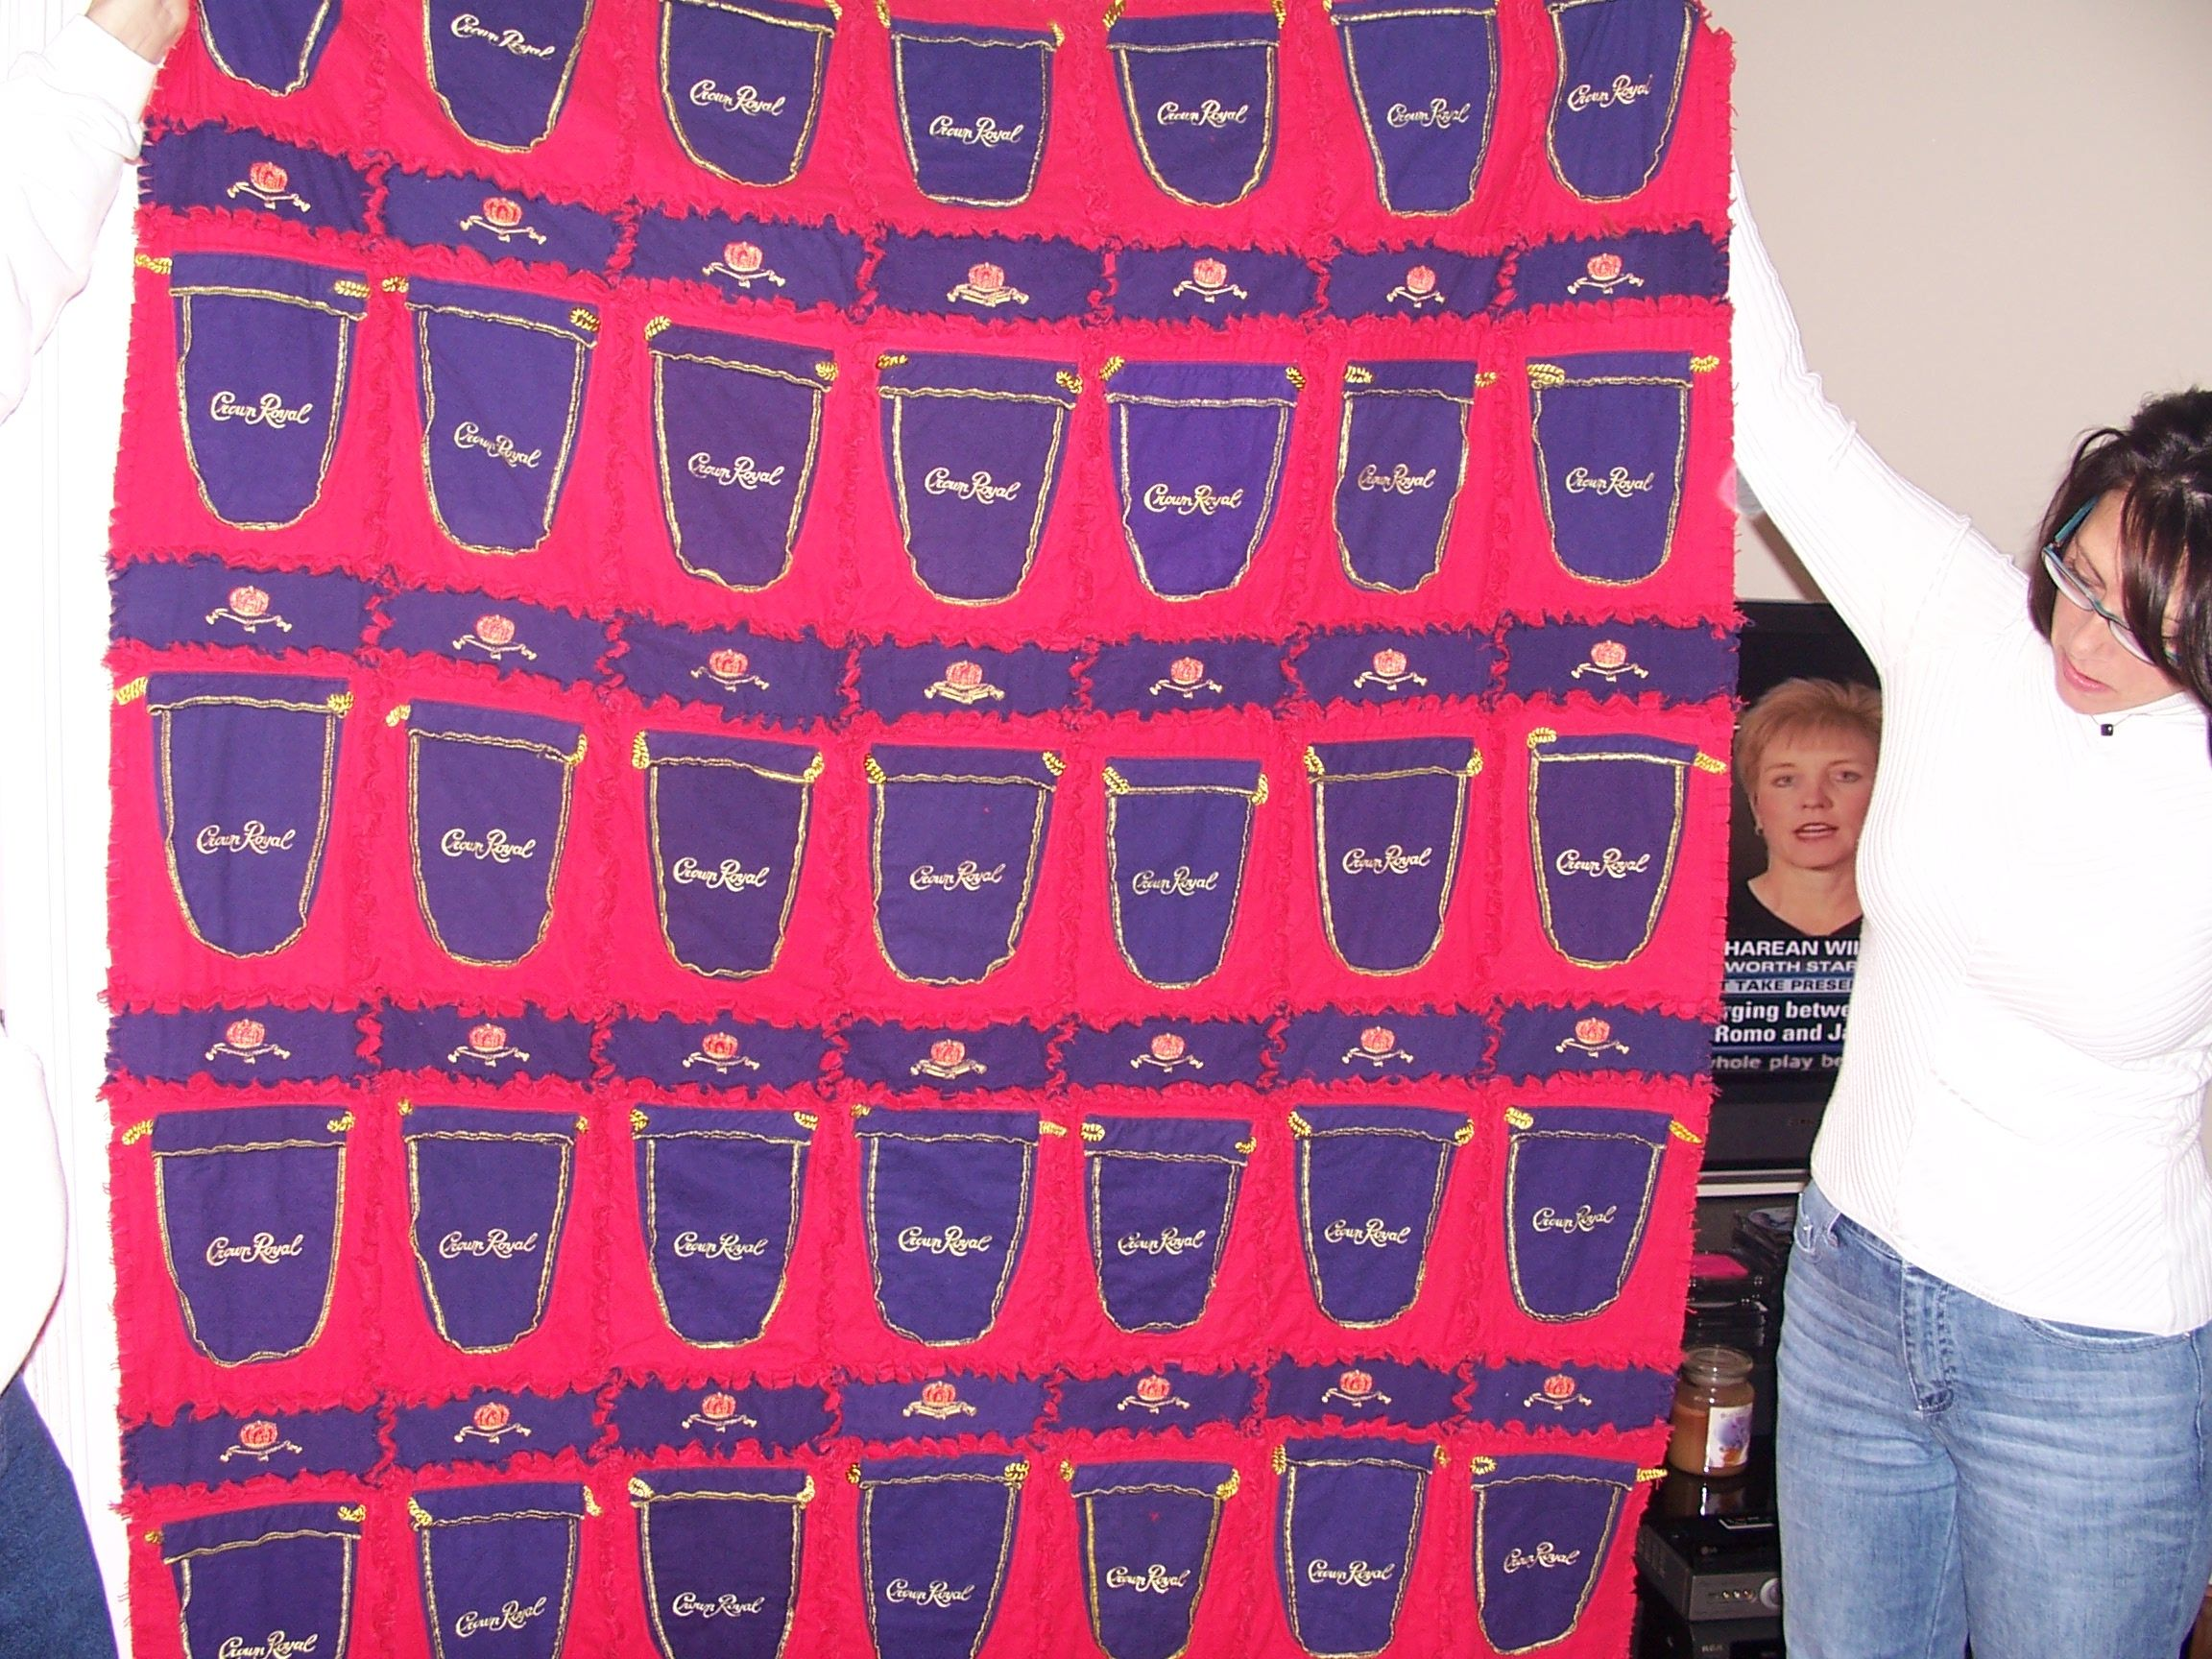 Crown Royal Bag Quilt ideas - Quilters Club of America ... : crown royal quilt patterns free - Adamdwight.com